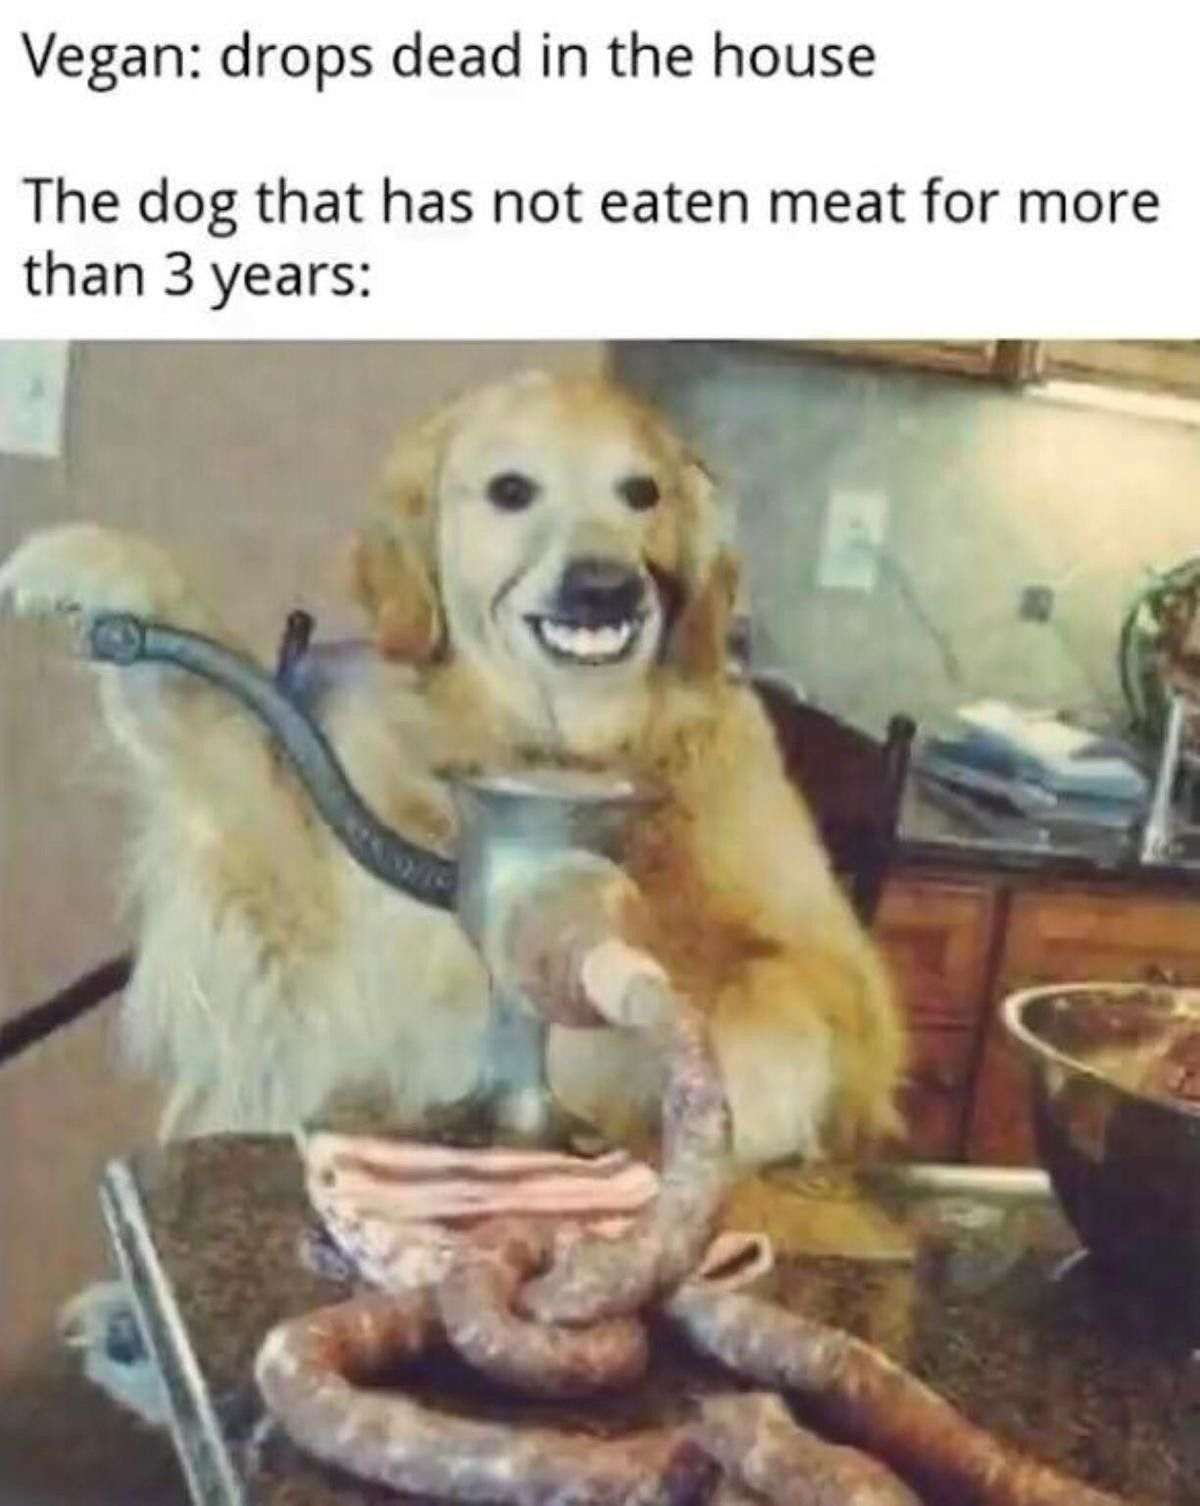 Only the best grass-fed meat for man's best friend